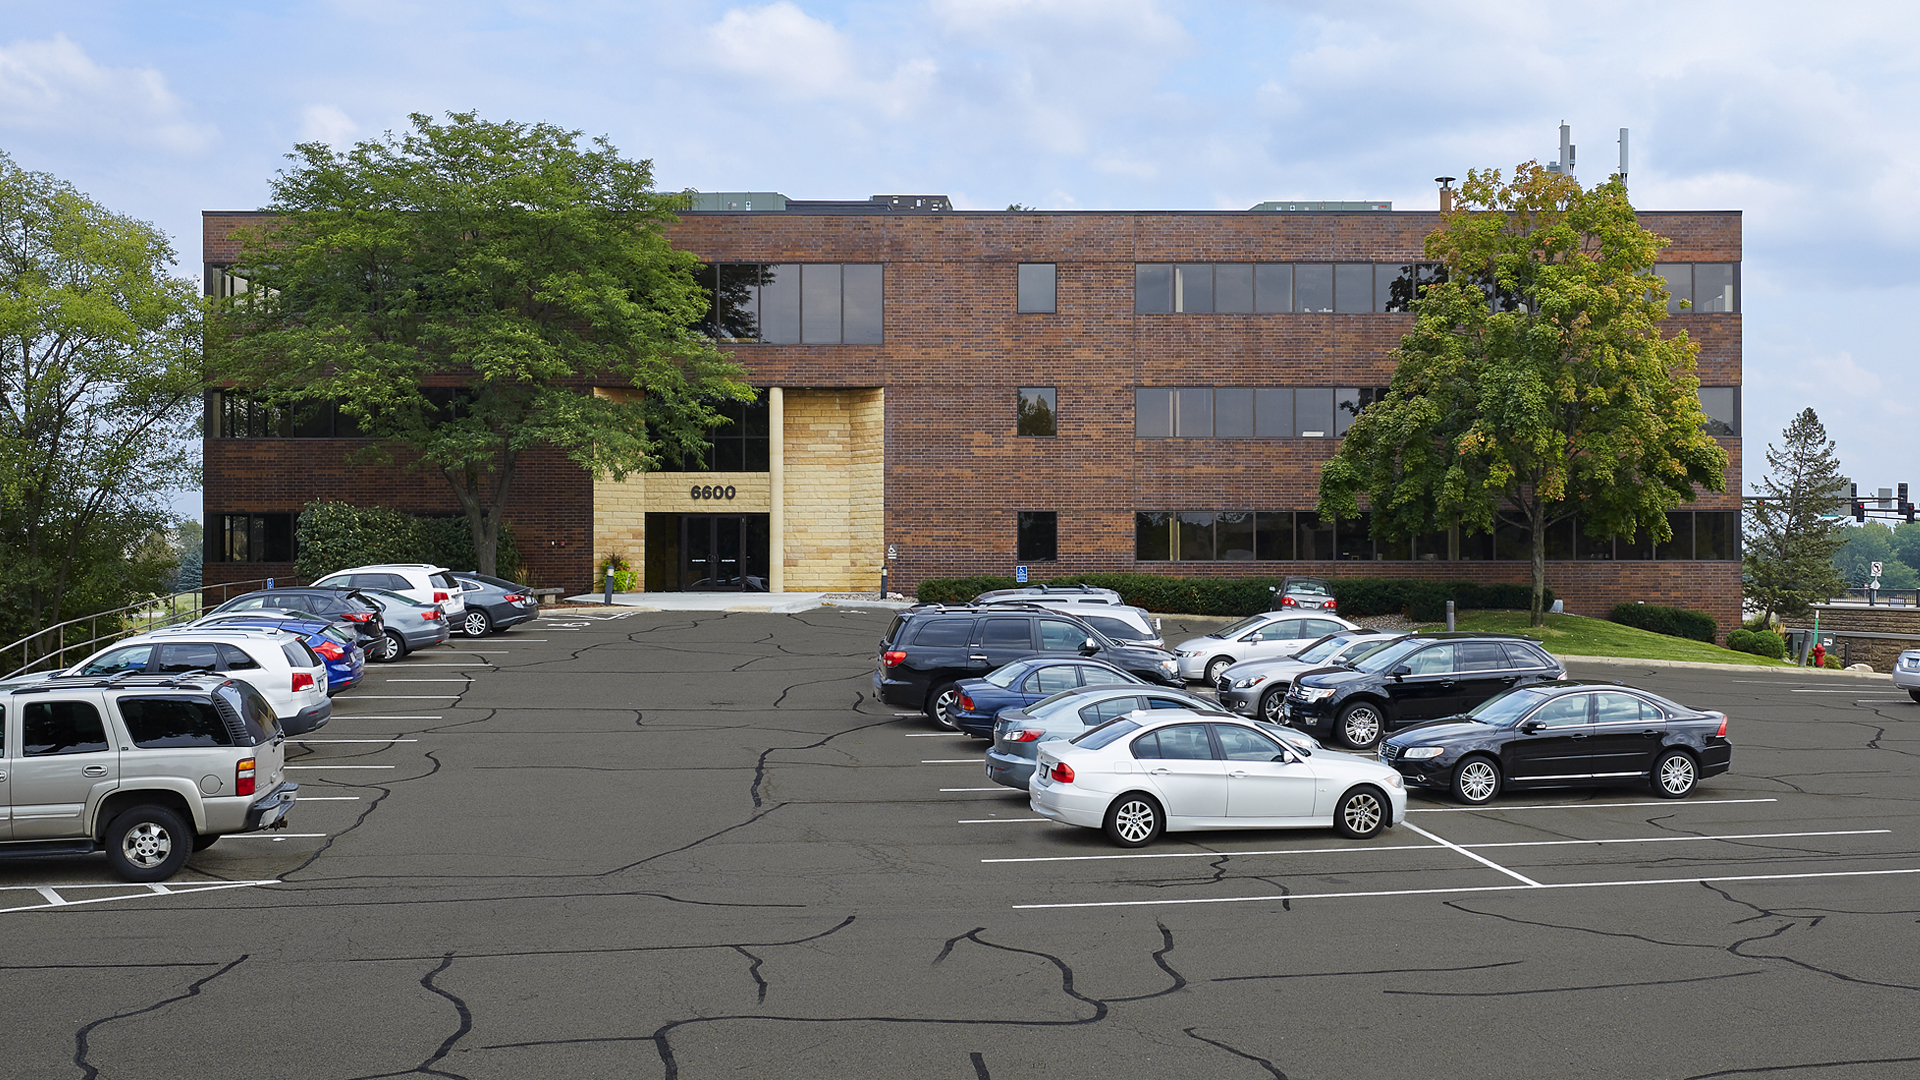 6600 Office Building Eden Prairie MN front of building and surface lot